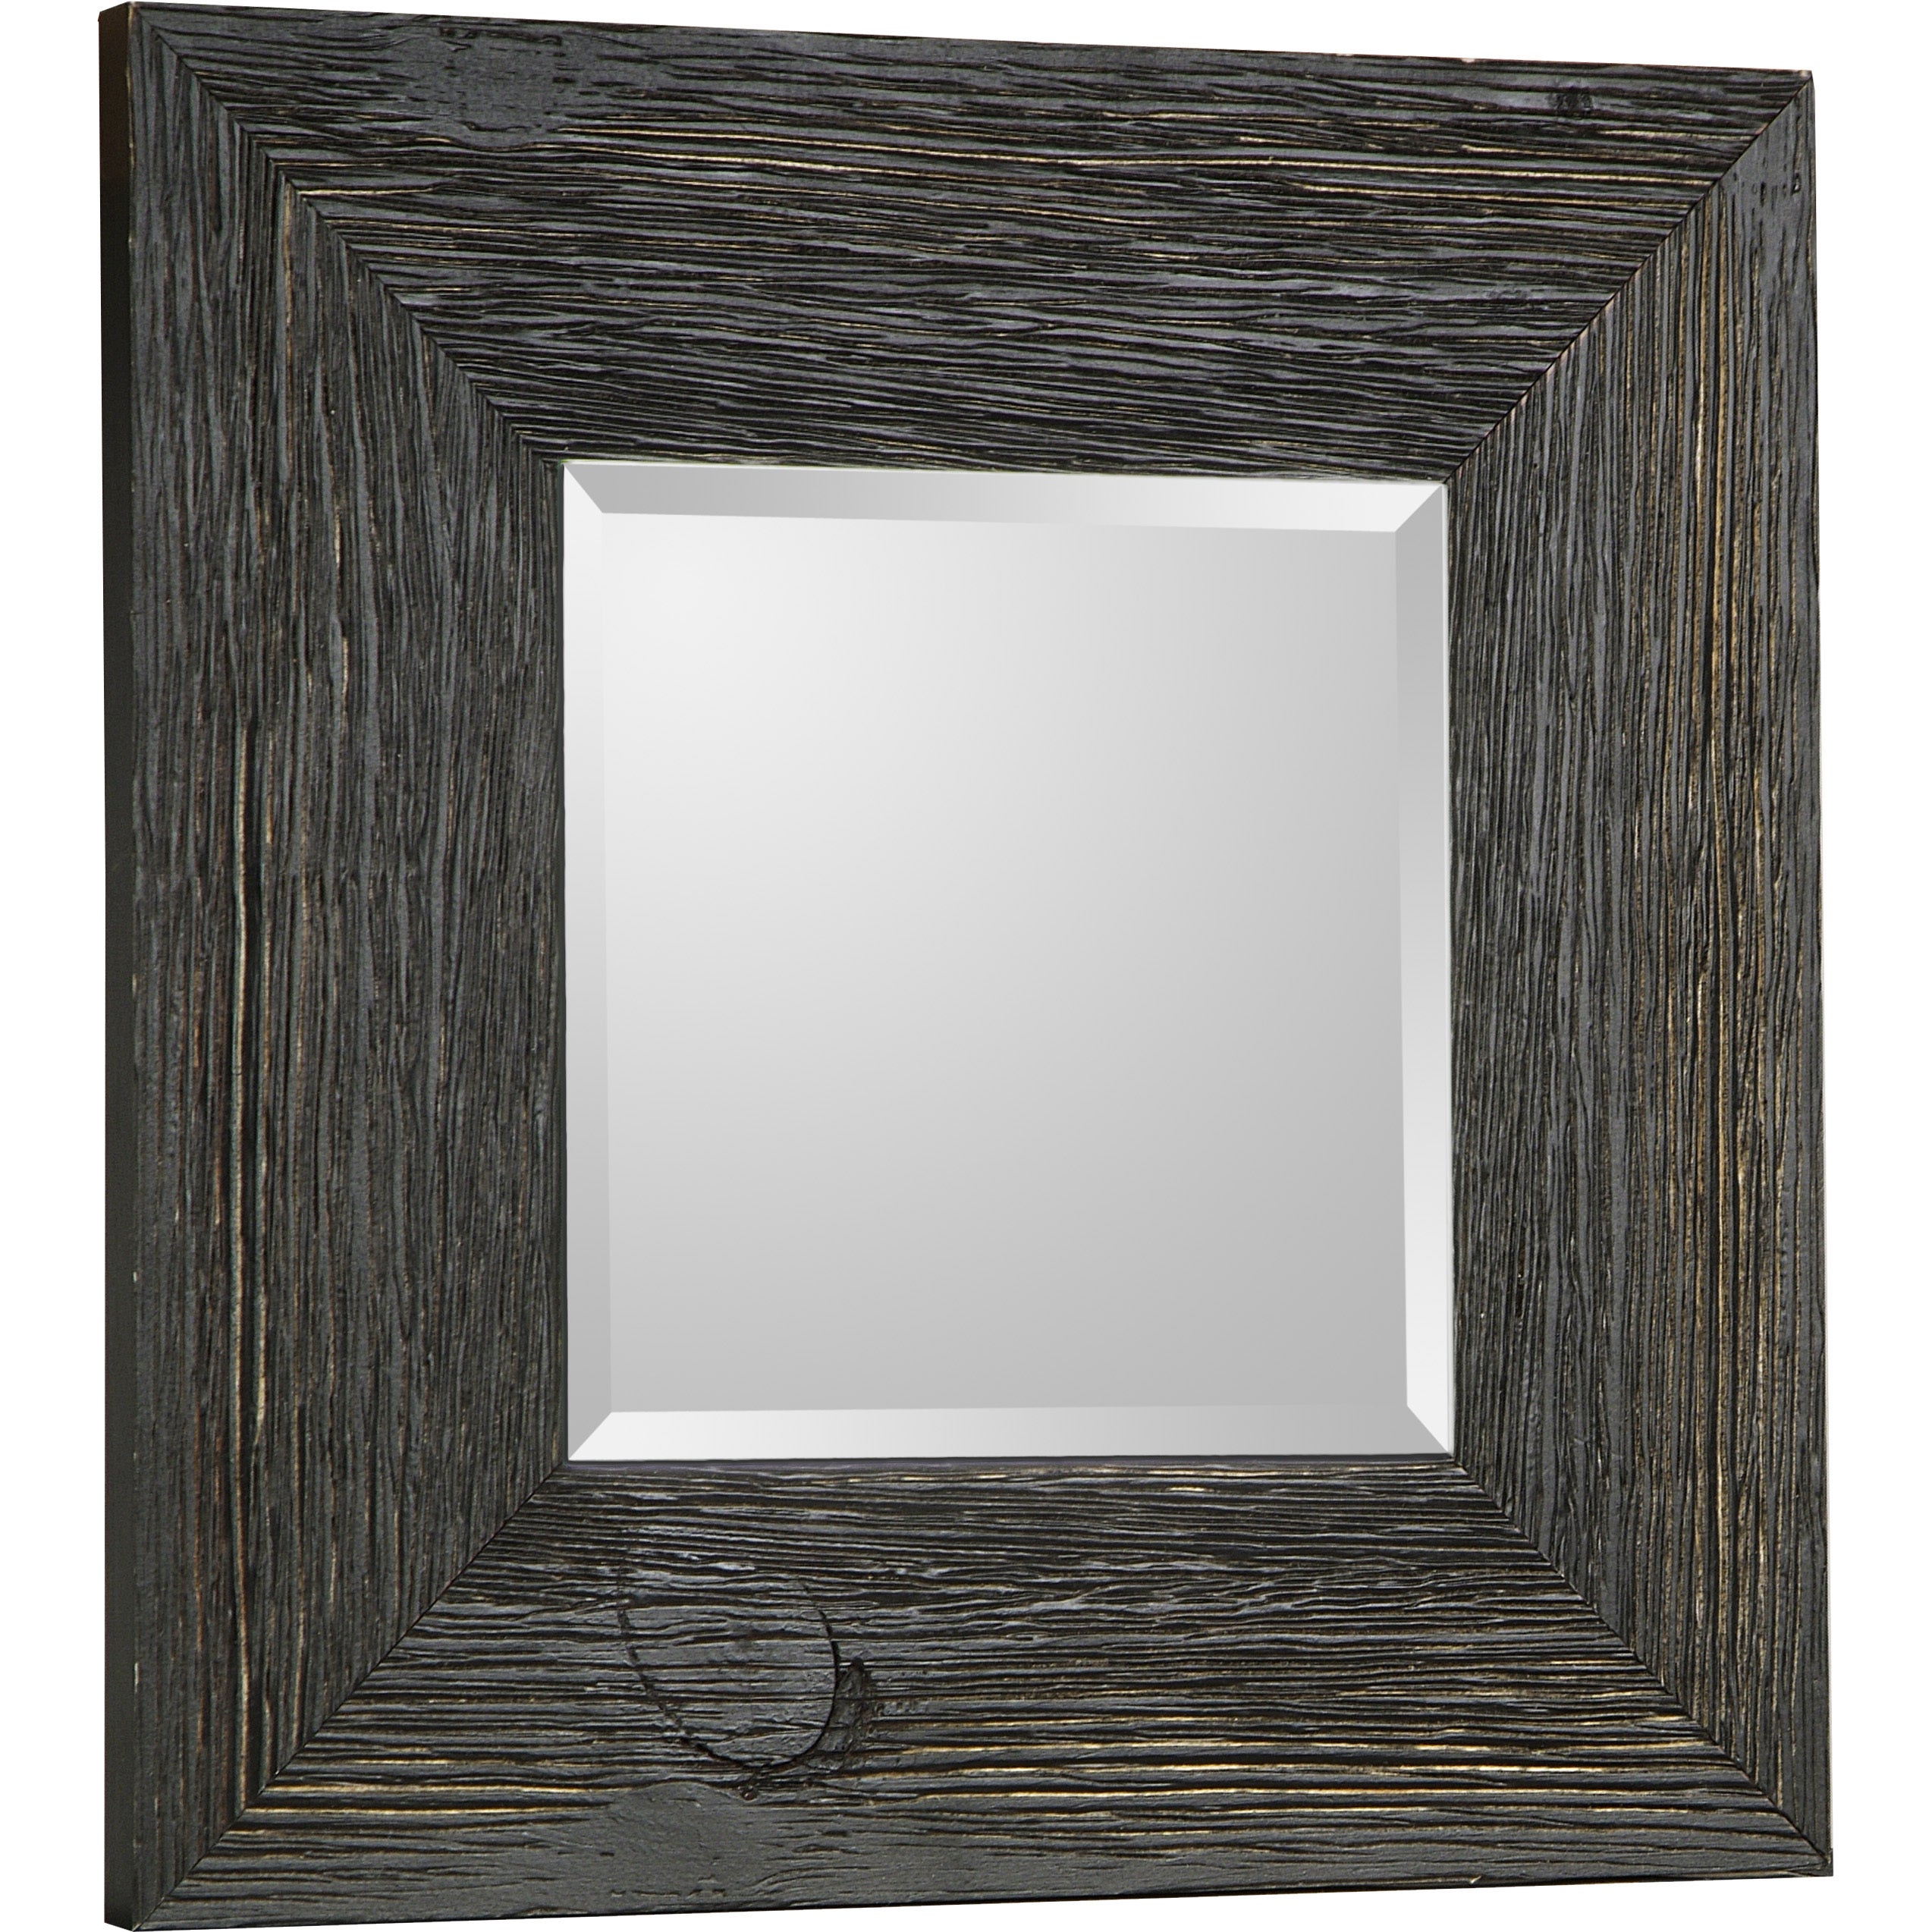 Hobbitholeco Beveled Square Accent Mirror 11X11 (Inner Mirror 6X6), Set Of 4 – Black In Modern & Contemporary Beveled Accent Mirrors (View 13 of 20)